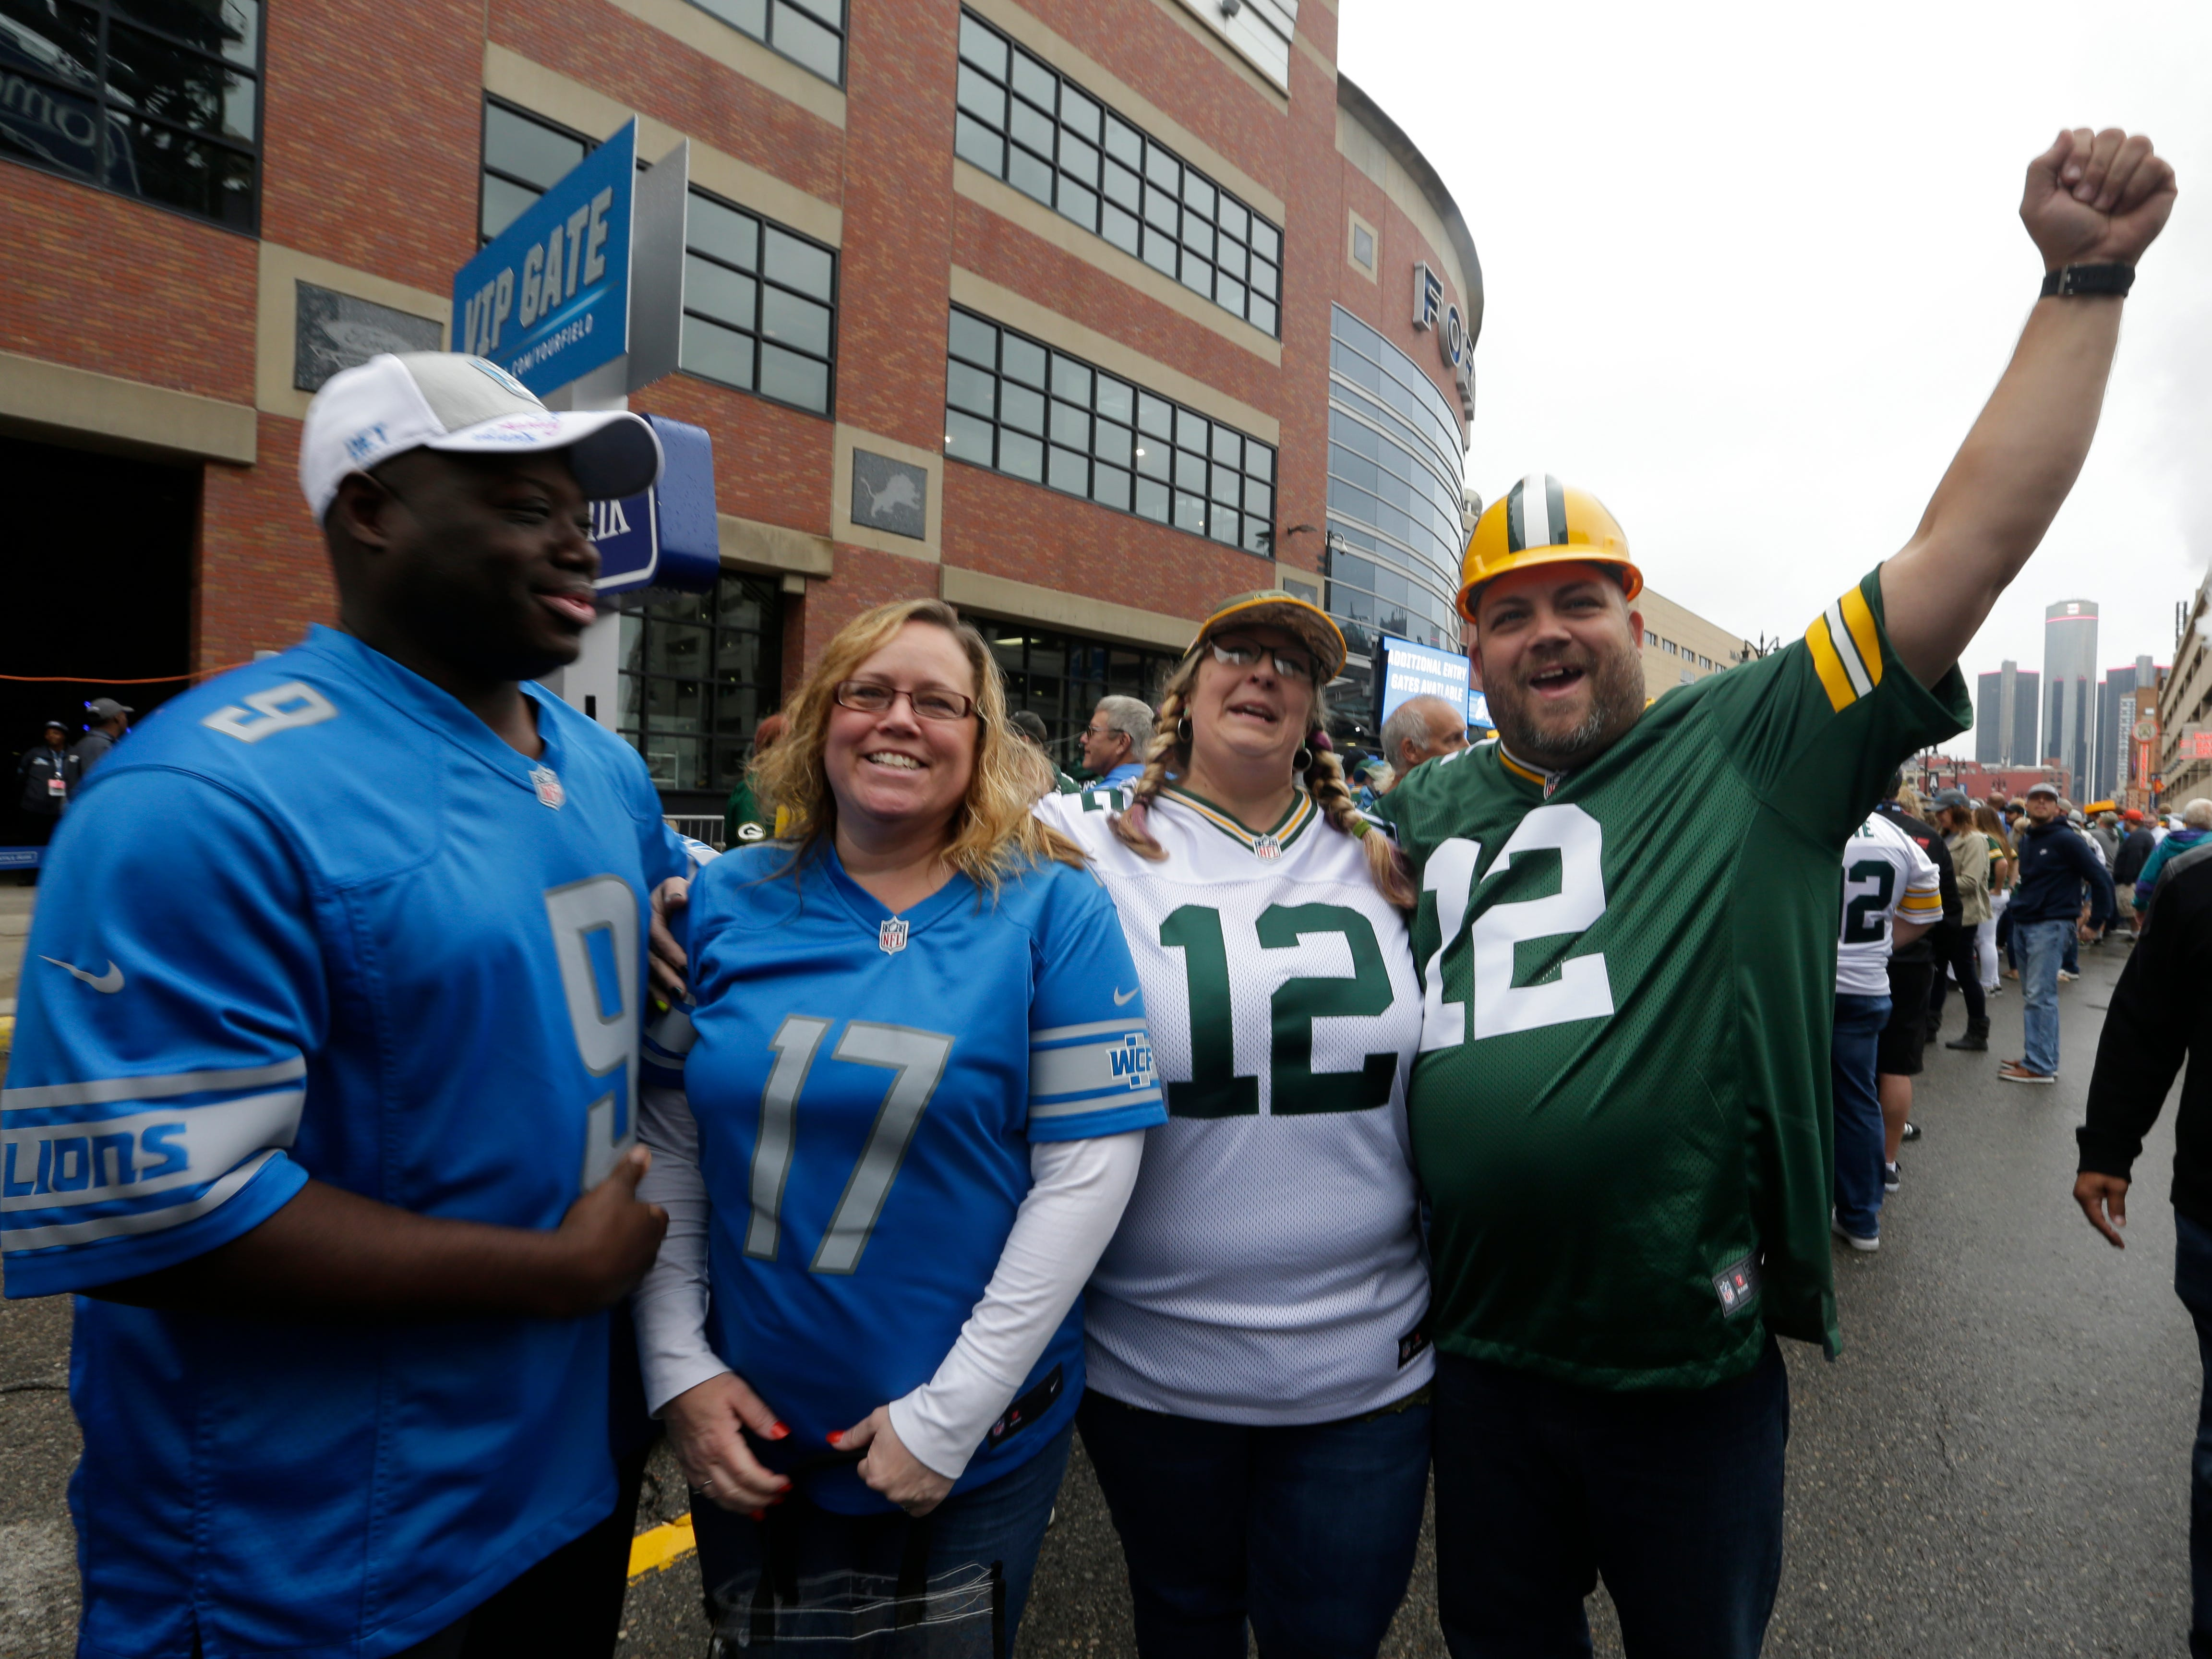 Al and Nancy Phillips and Shawna Lawson and Bill Lawson, from Ann Arbor, show their friendly rivalry before  the Green Bay Packers vs. Detroit Lions NFL game at Ford Field, Detroit, Sunday, October 7, 2018.